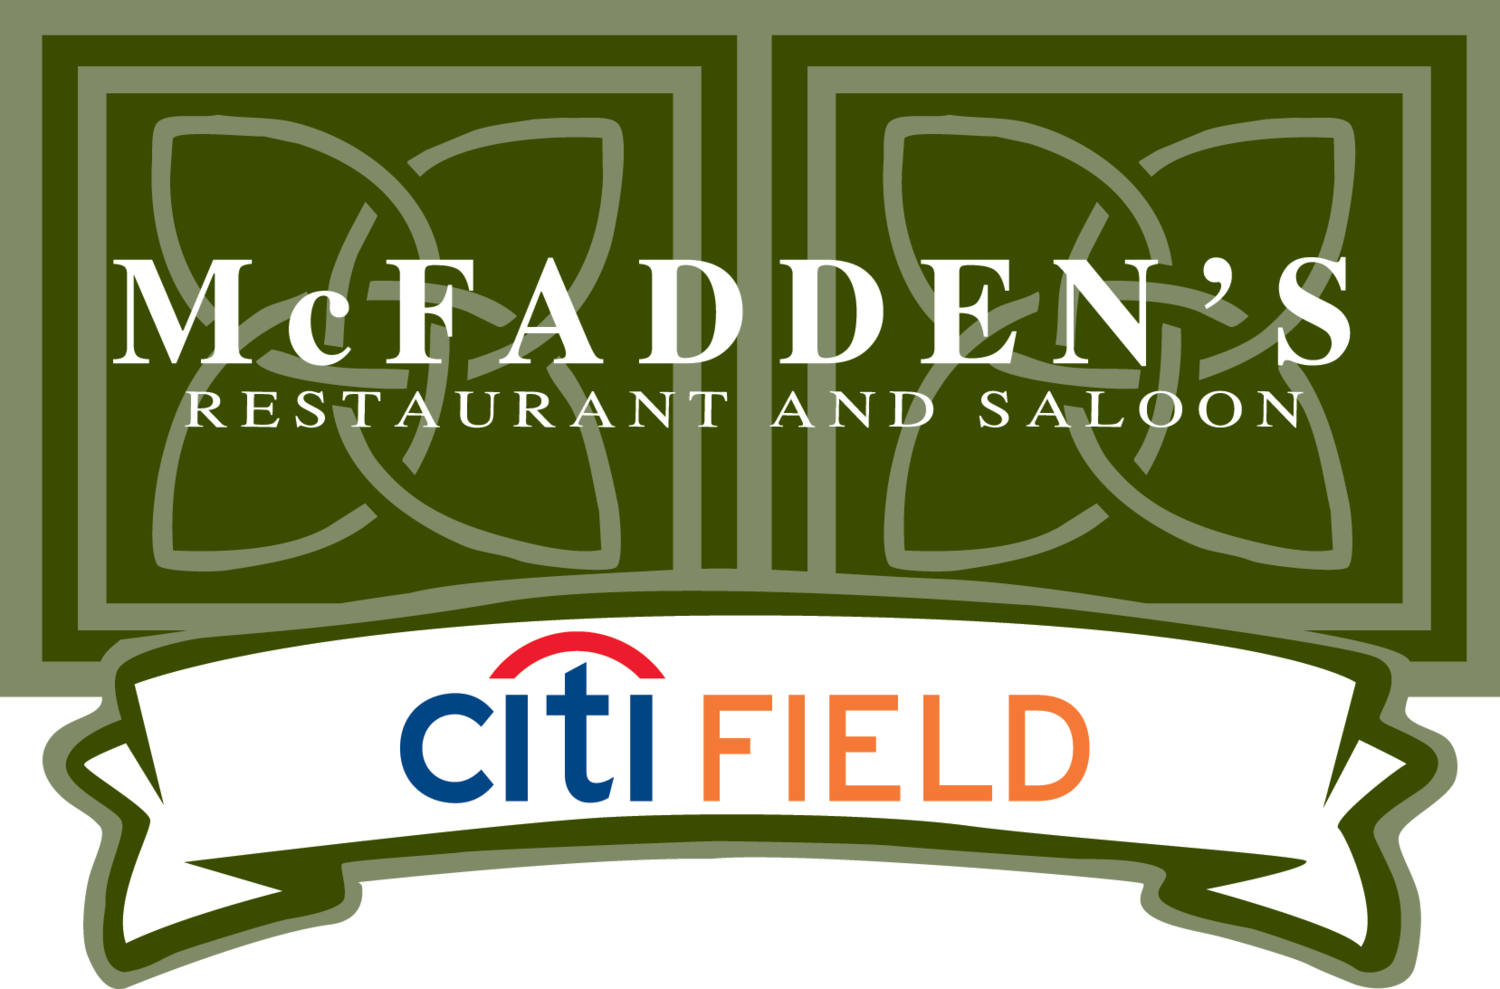 McFadden's Citifield